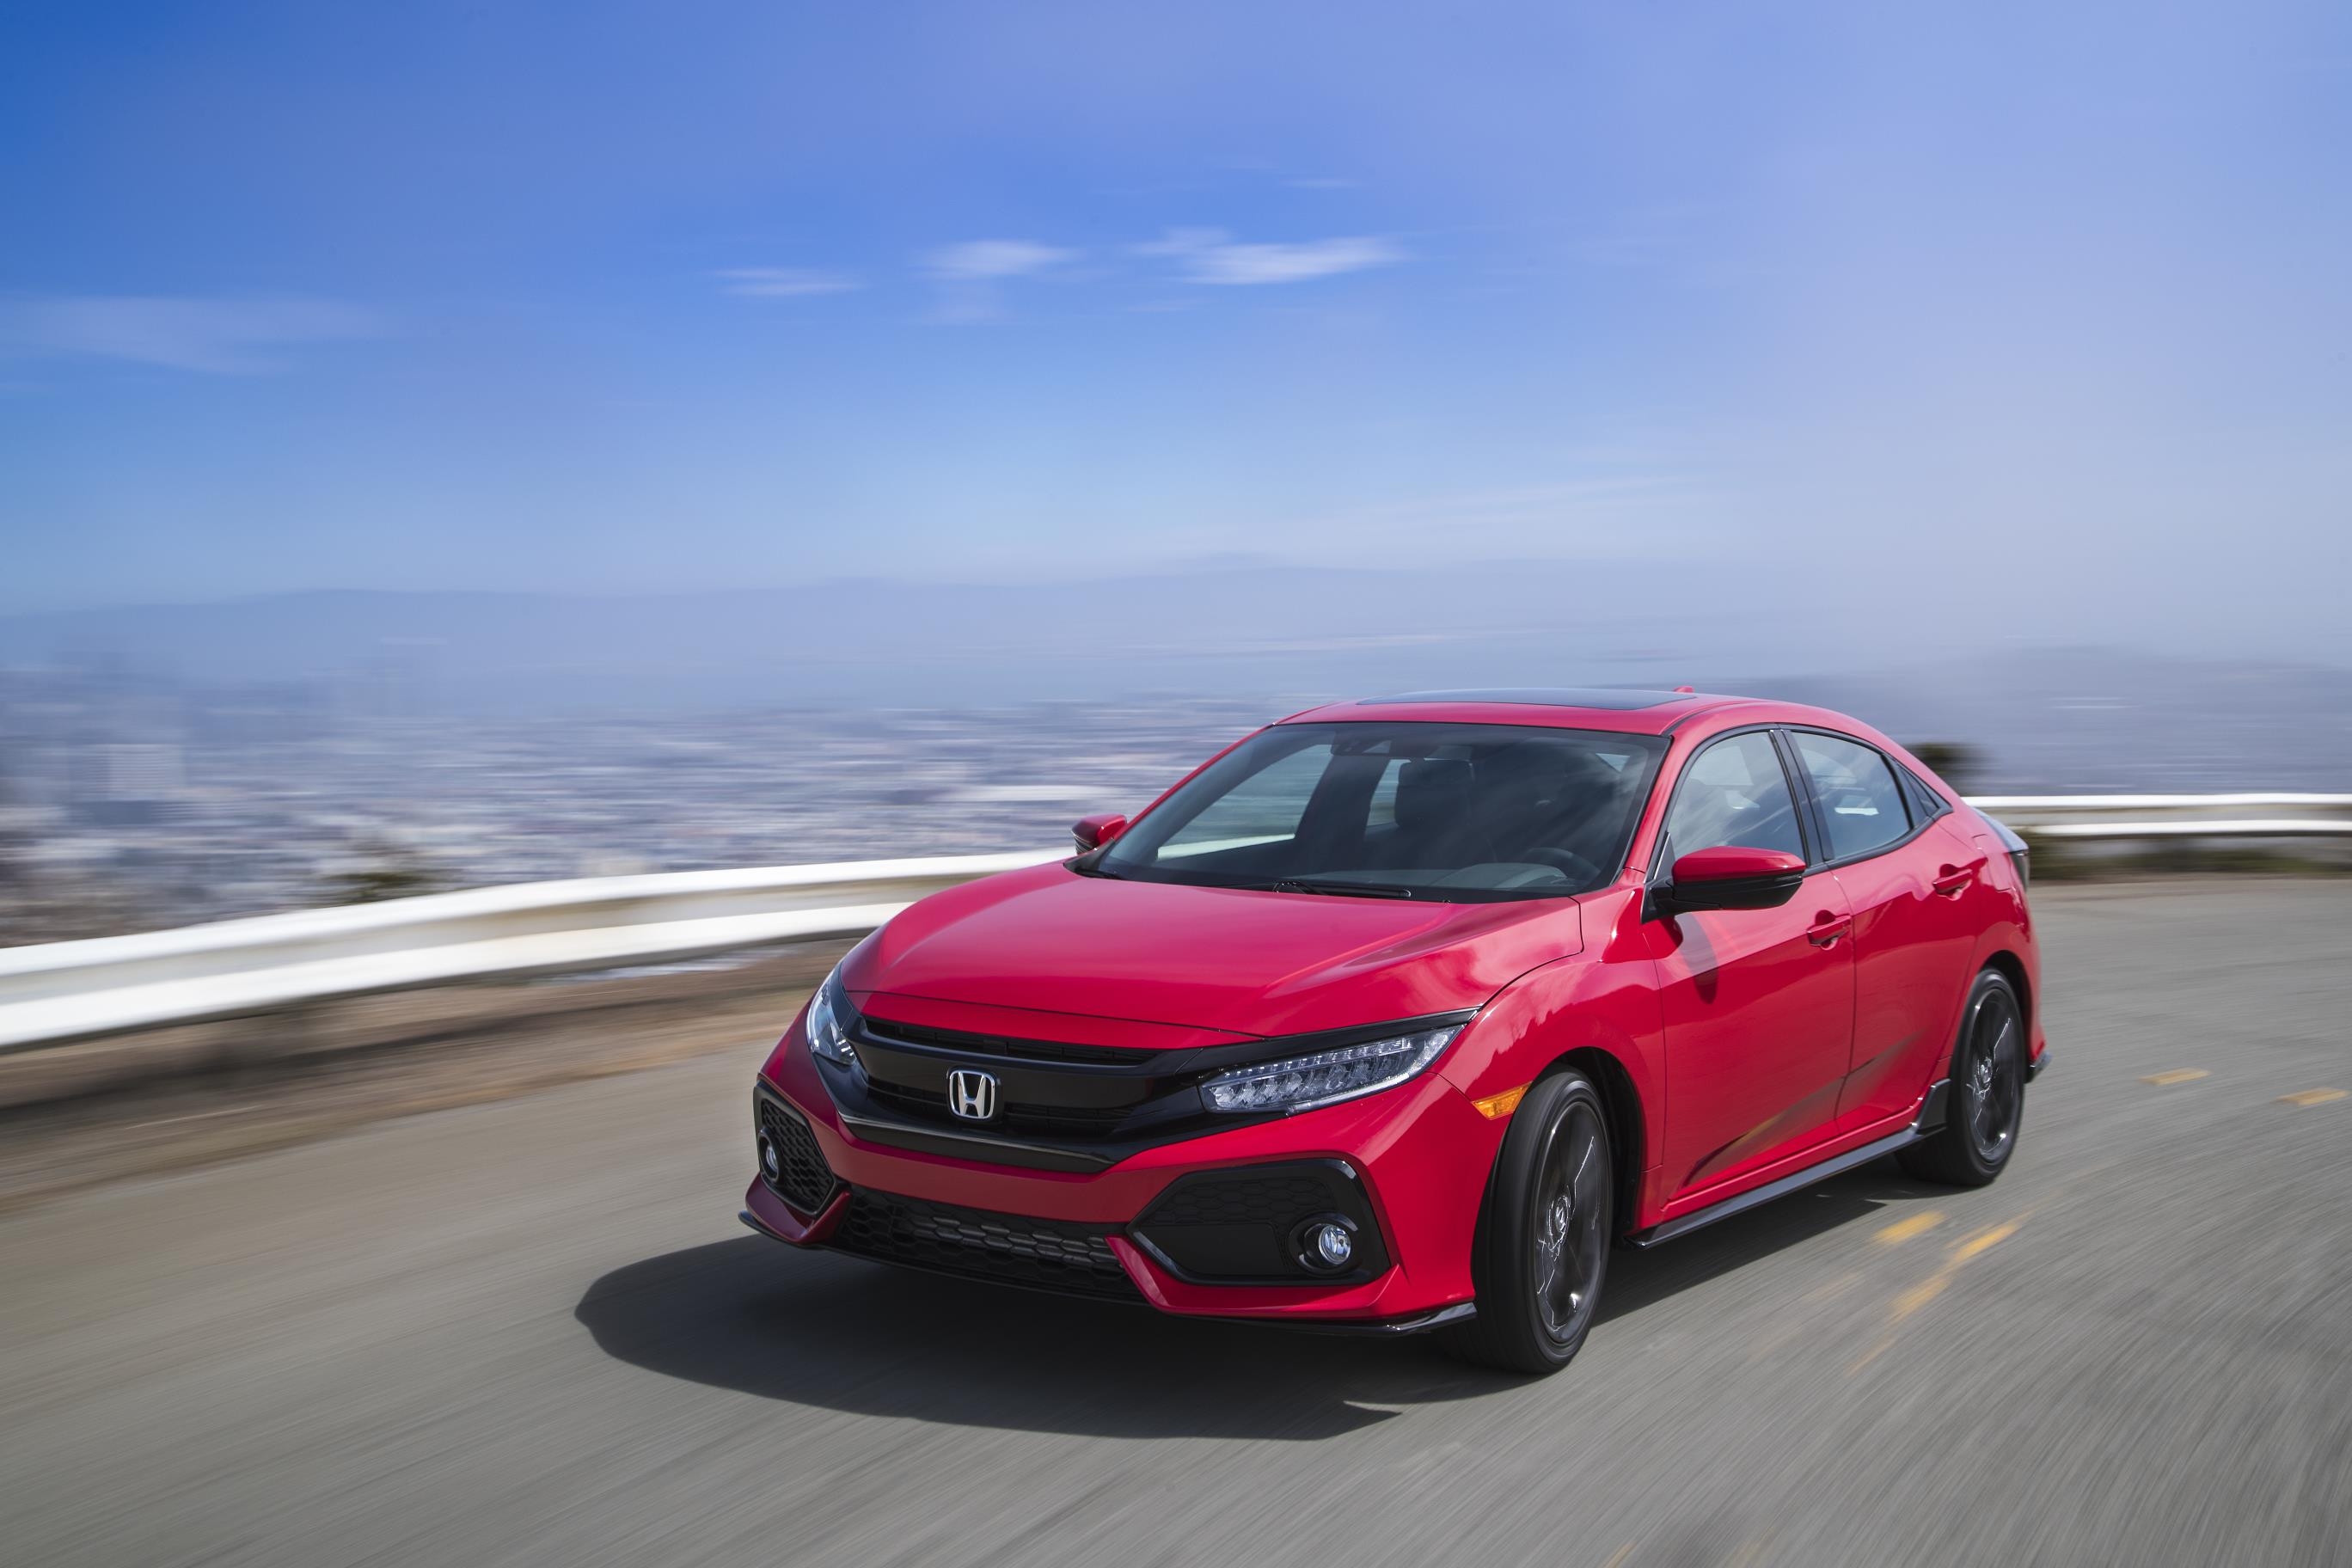 2017 honda civic hatchback arrives in america specs and pricing revealed autoevolution. Black Bedroom Furniture Sets. Home Design Ideas